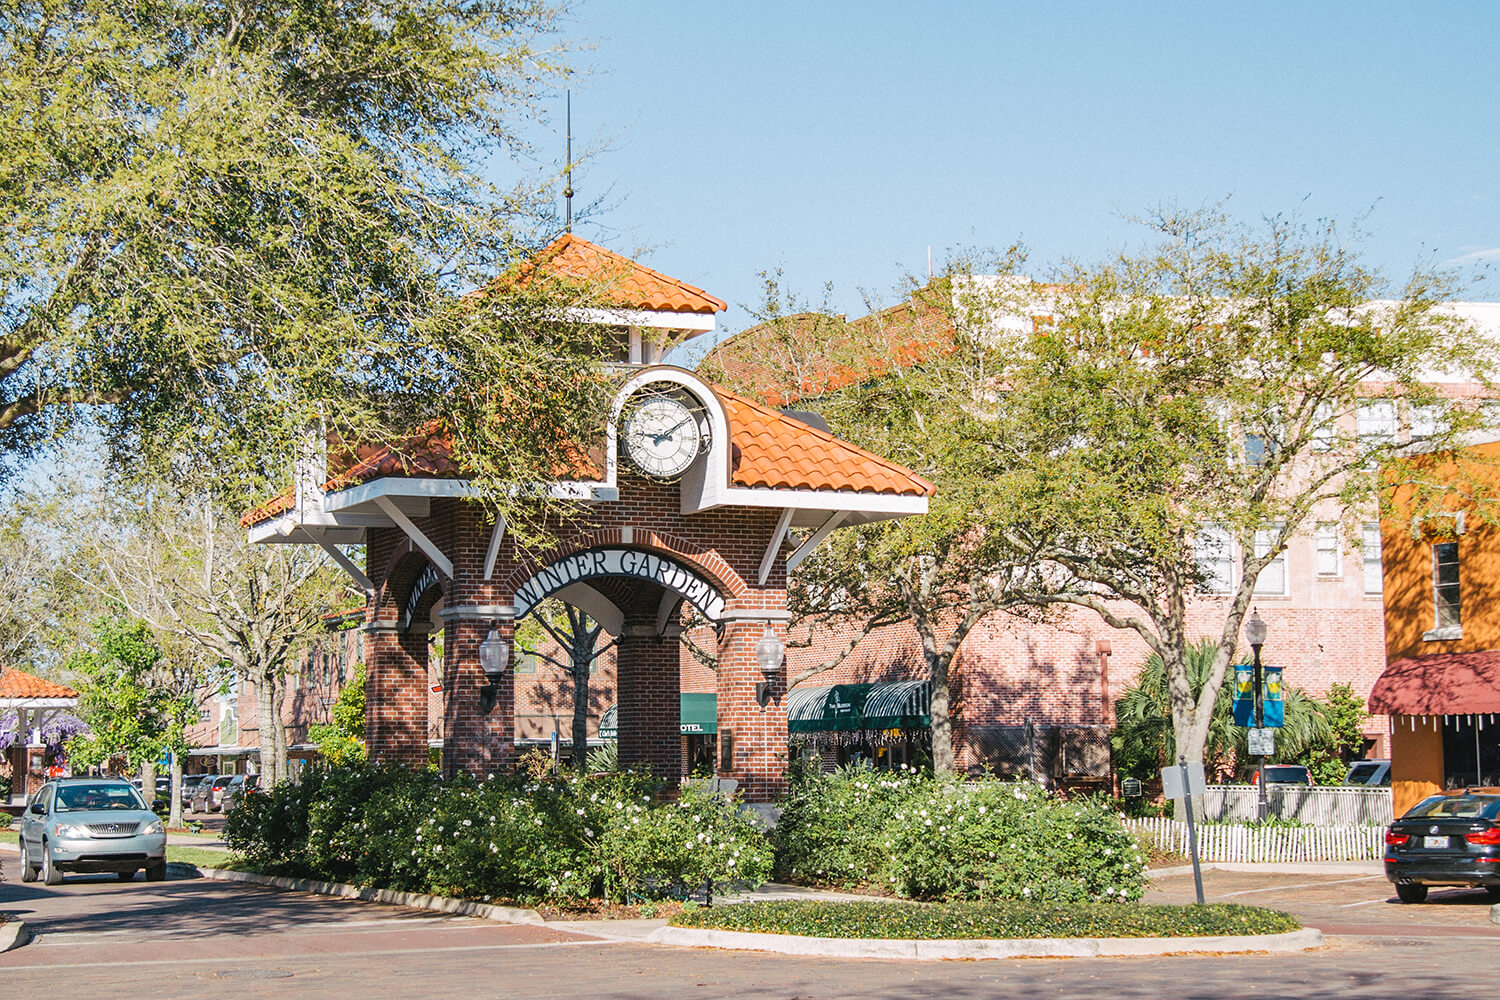 HISTORIC WINTER GARDEN - Located in Historic Downtown Winter Garden, Eggs & Oats is a purveyor of farm to table breakfast and brunch cuisine.